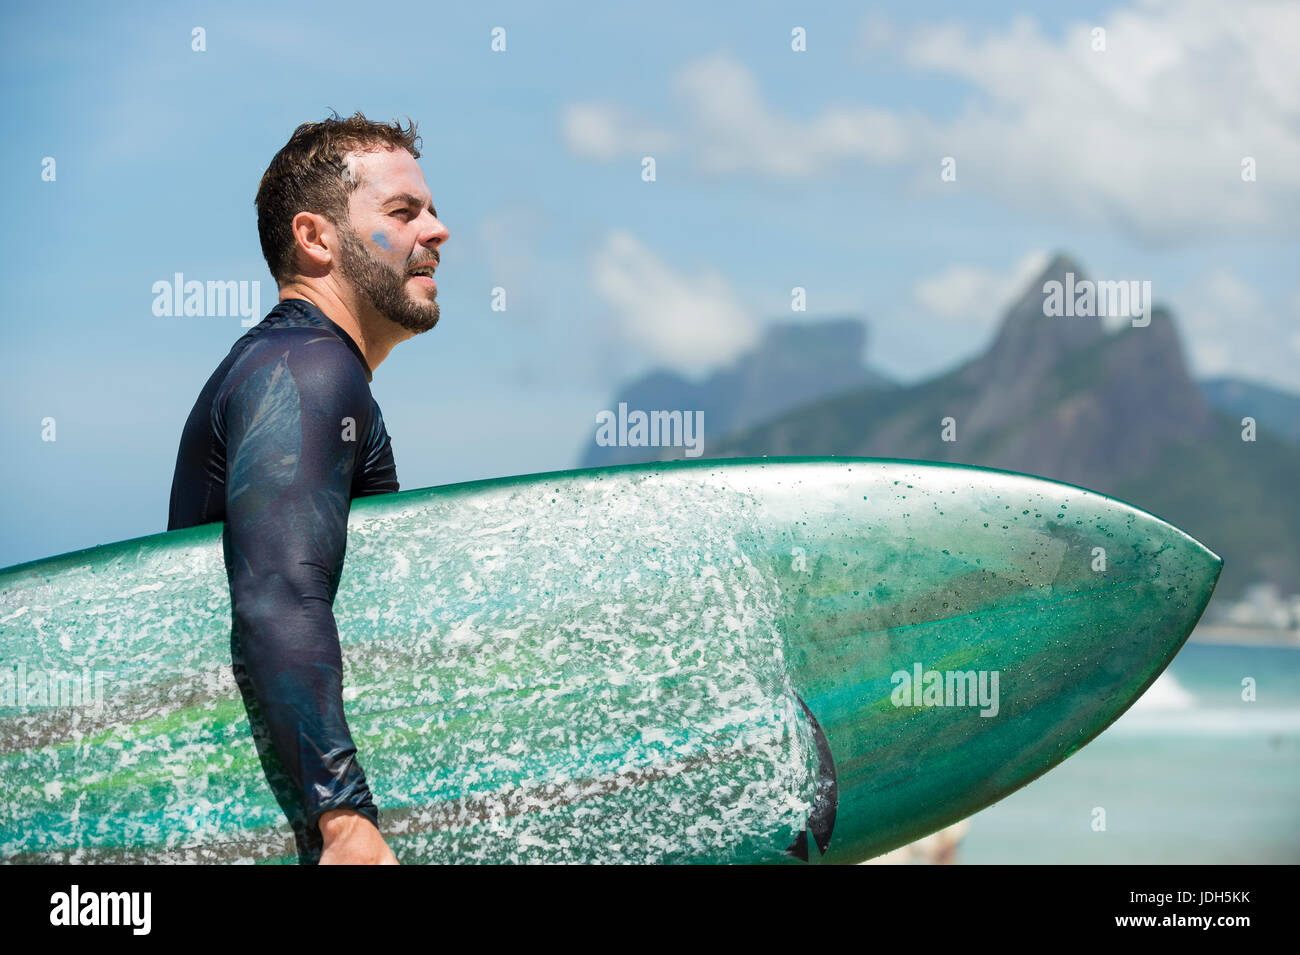 RIO DE JANEIRO - FEBRUARY 10, 2017: Brazilian surfer walks with surfboard along the shore at Arpoador with two brothers - Stock Image